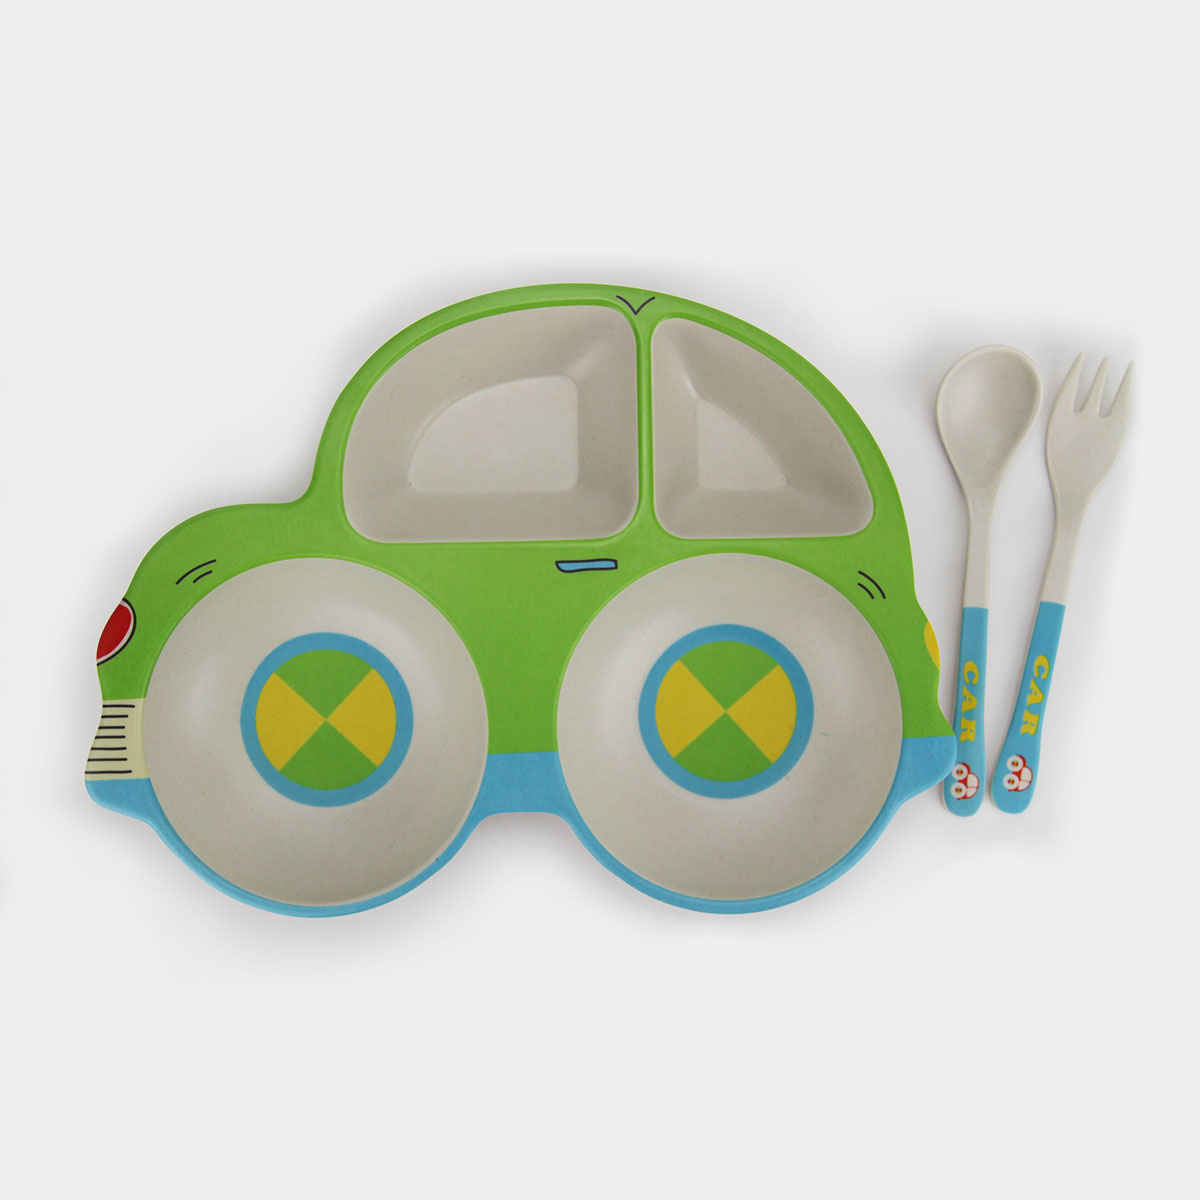 Food Grade Kids Dinner Set Bamboo Fiber Dinnerware Set